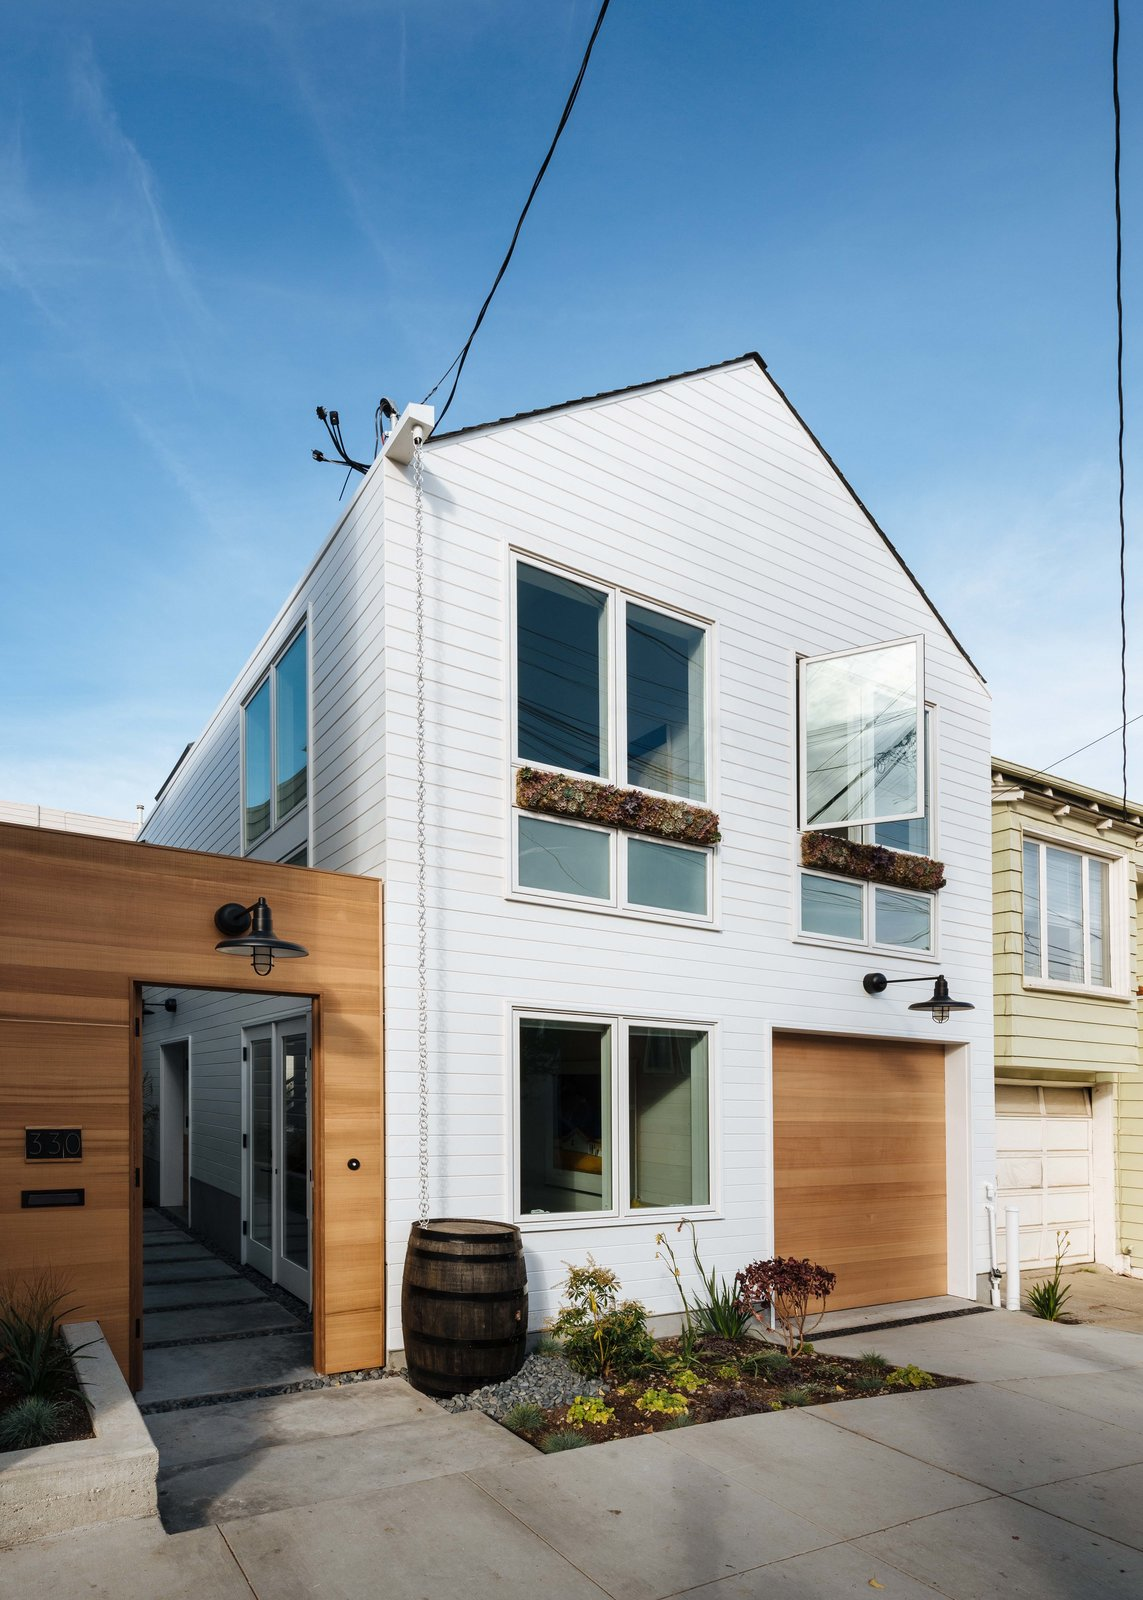 Outdoor, Gardens, Walkways, Front Yard, and Concrete Patio, Porch, Deck Space-Efficient Renovation in San Francisco, California  Photo 4 of 11 in Dwell's Top 10 Design Pros of 2017